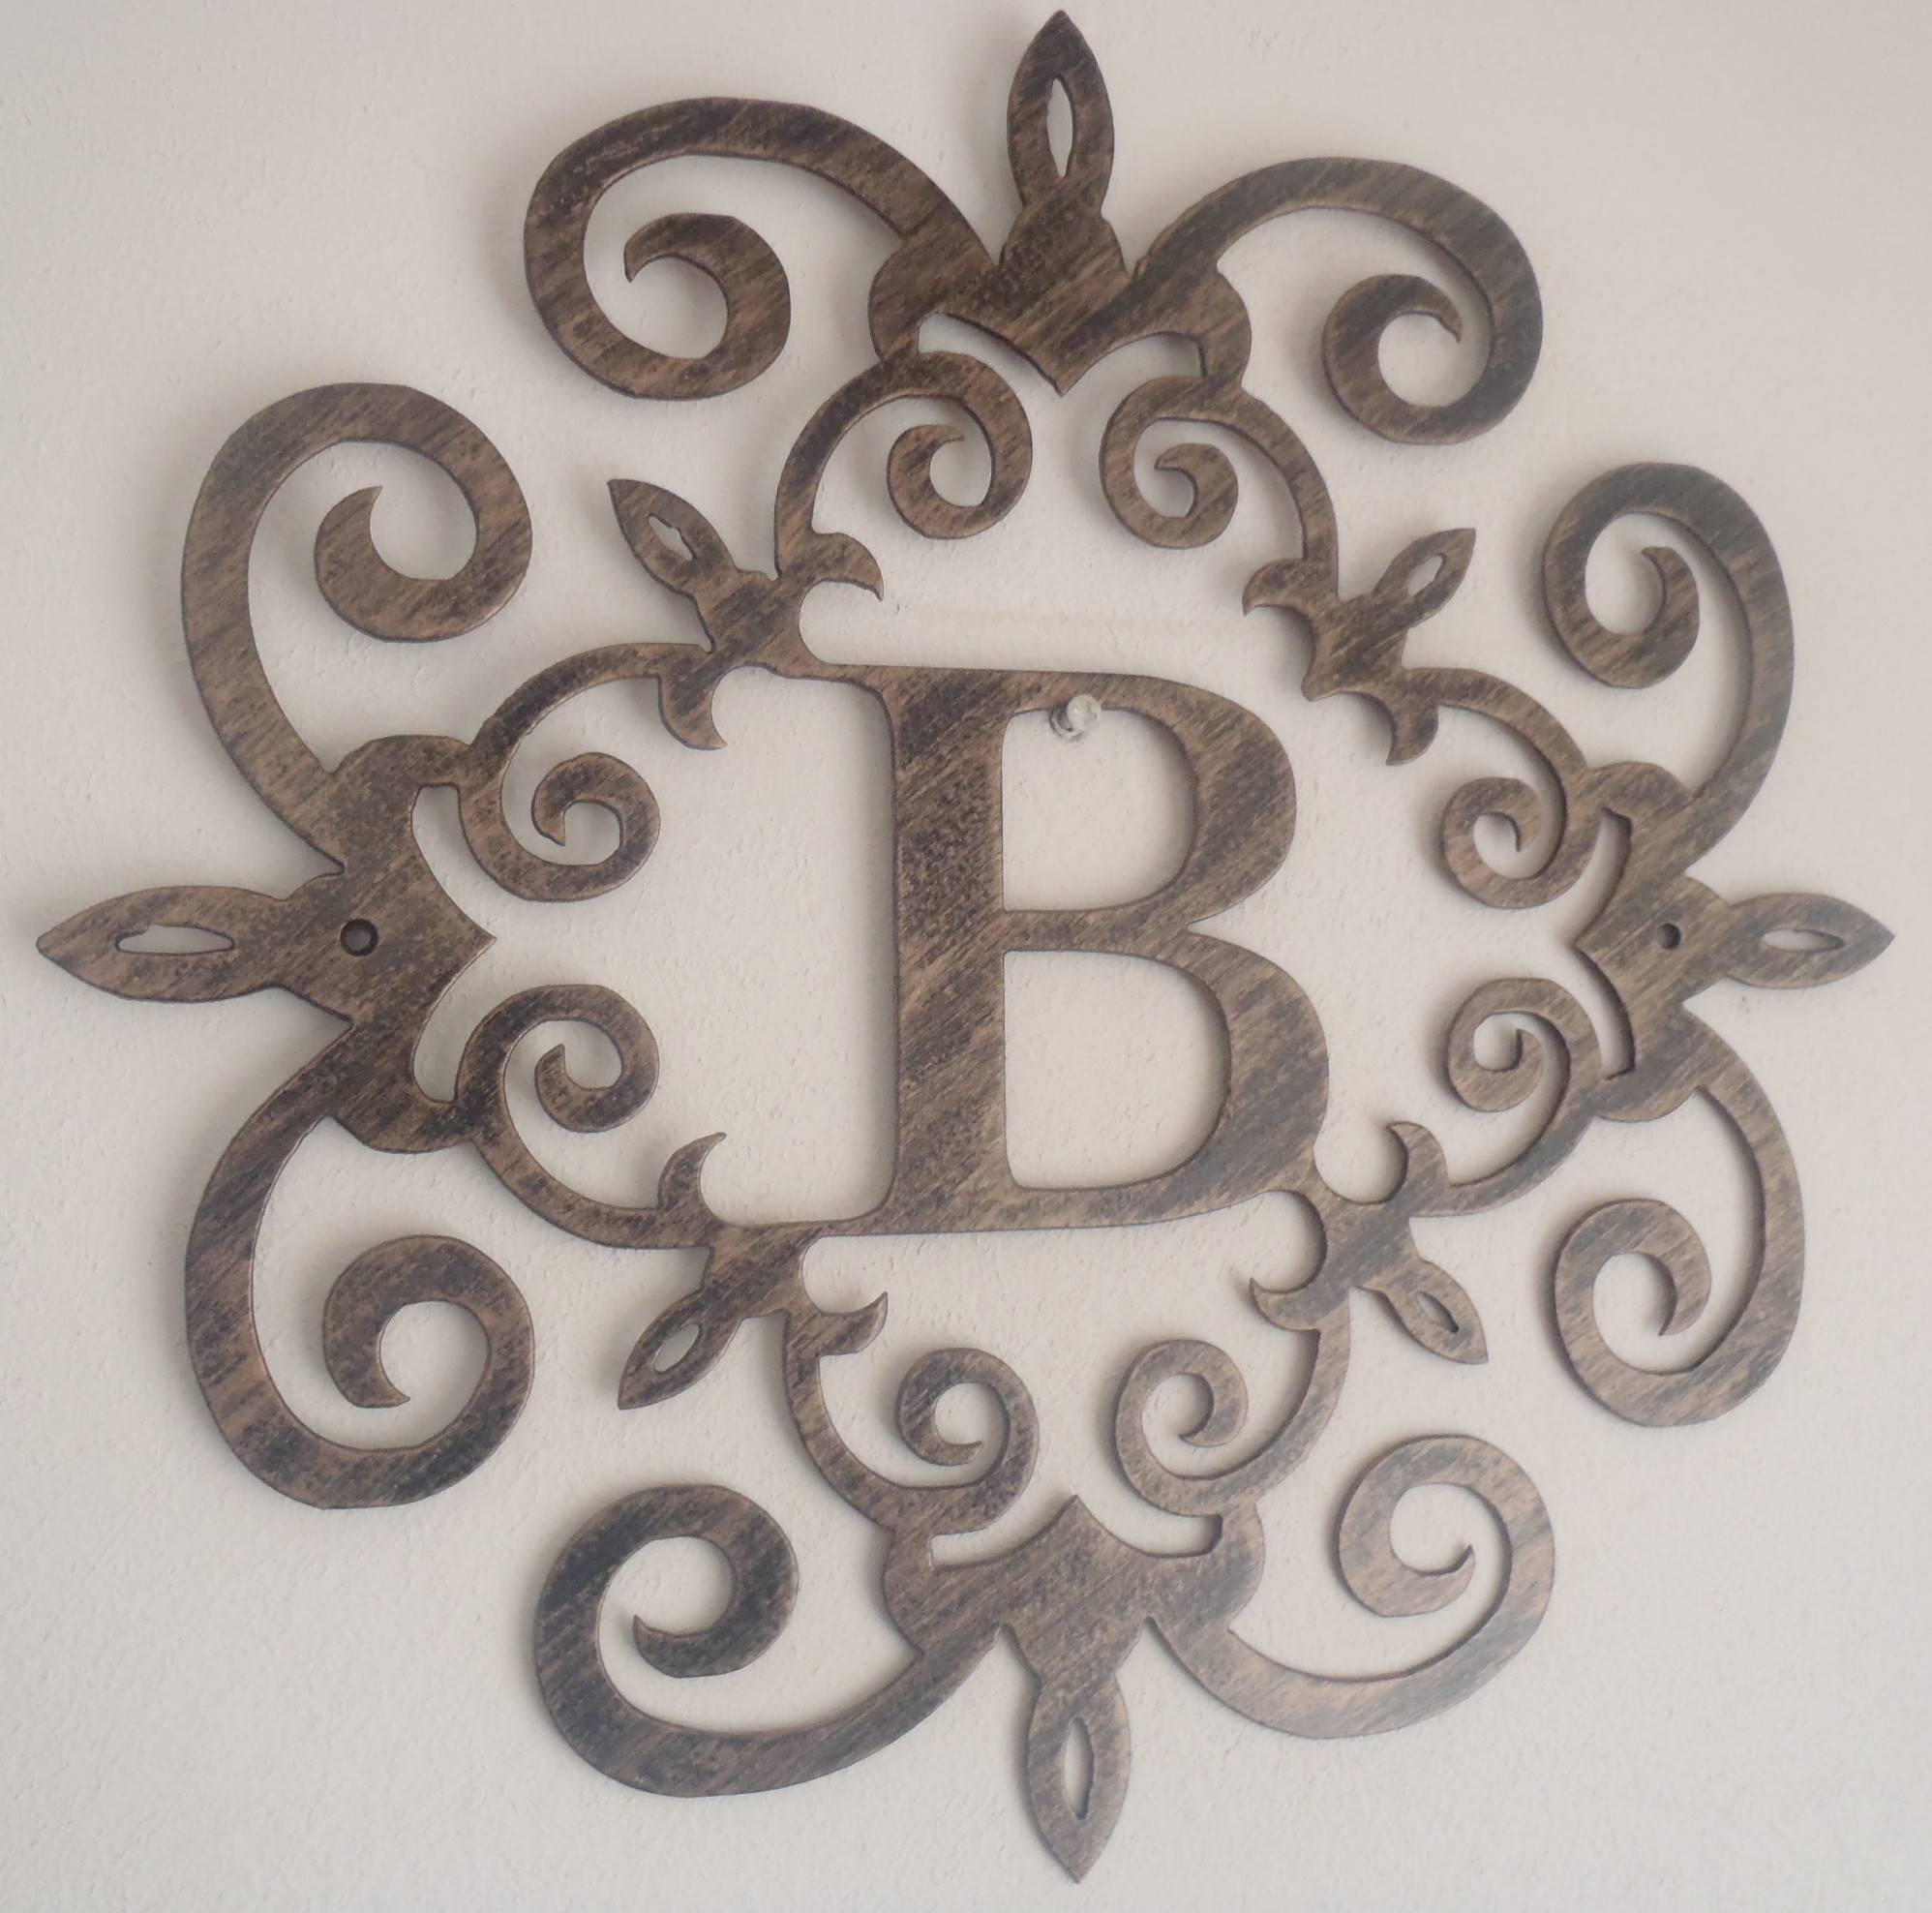 Decorating Large Metal Letters For Wall Decor | Jeffsbakery Within Latest Huge Metal Wall Art (View 3 of 20)